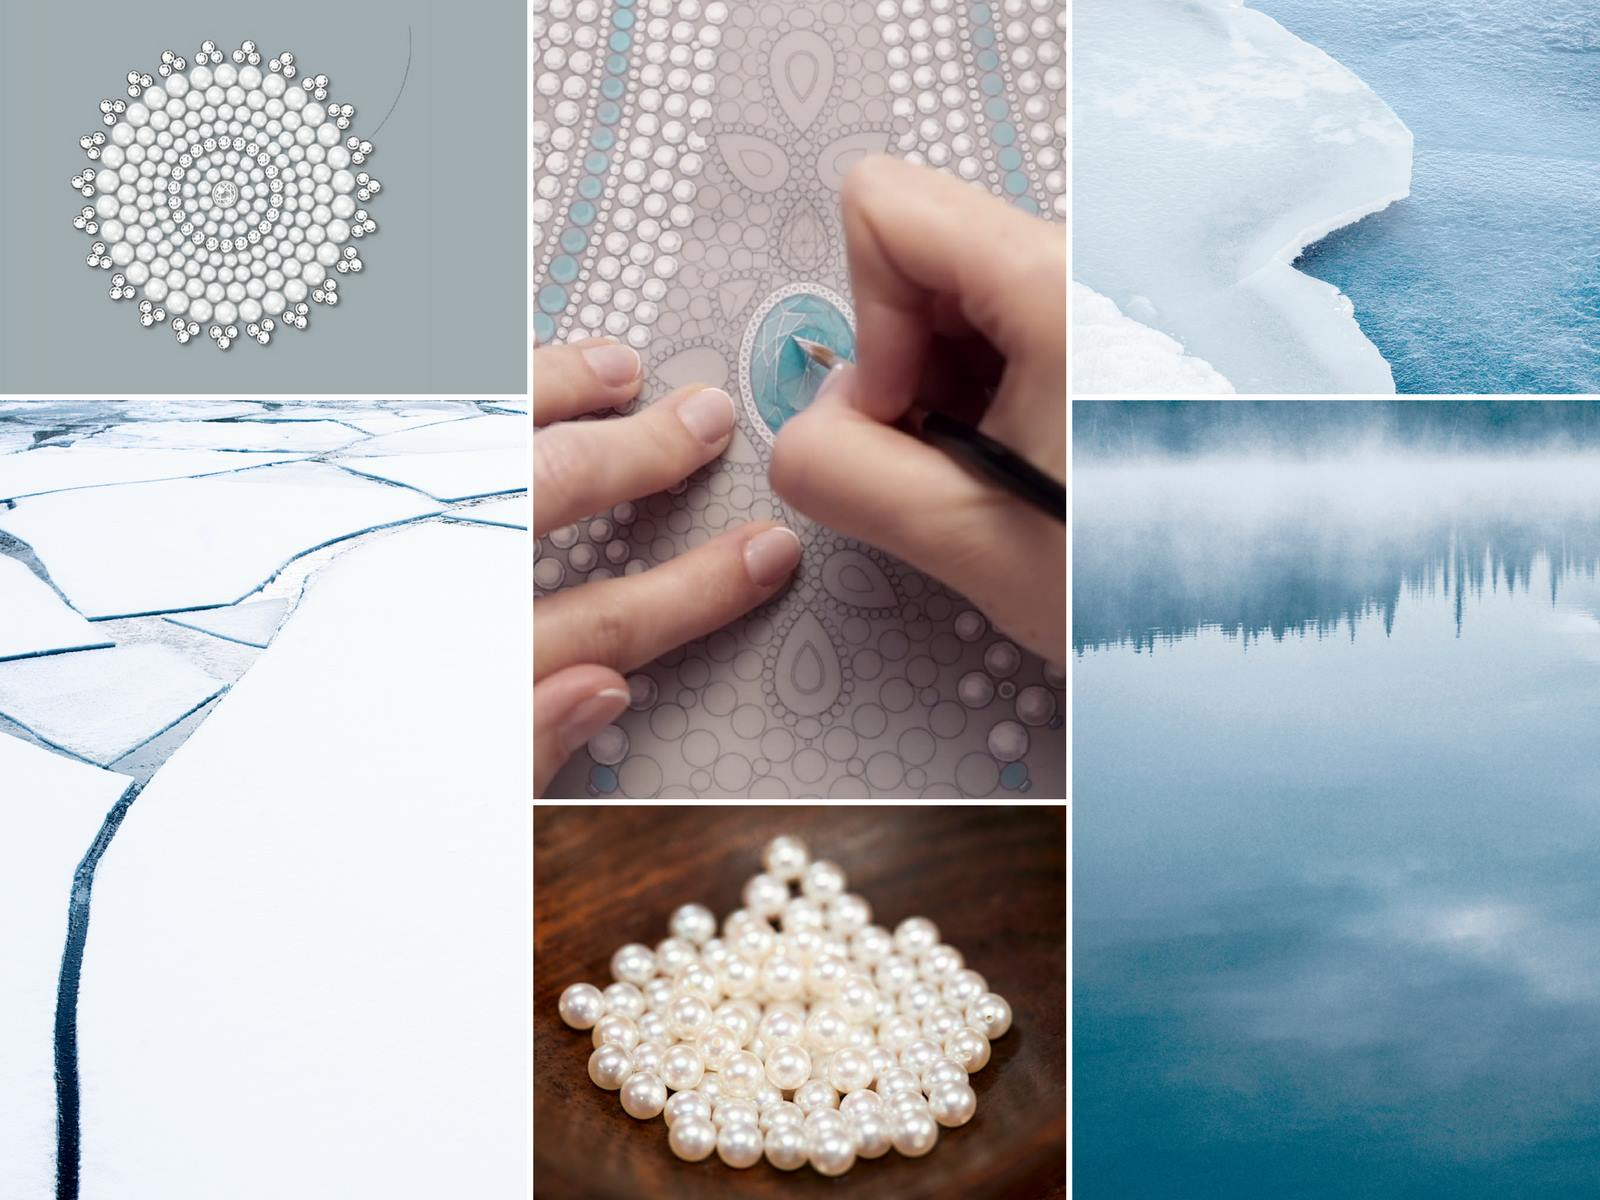 On the rocks: Boucheron's frosty Baïkal necklace is fit for an ice queen